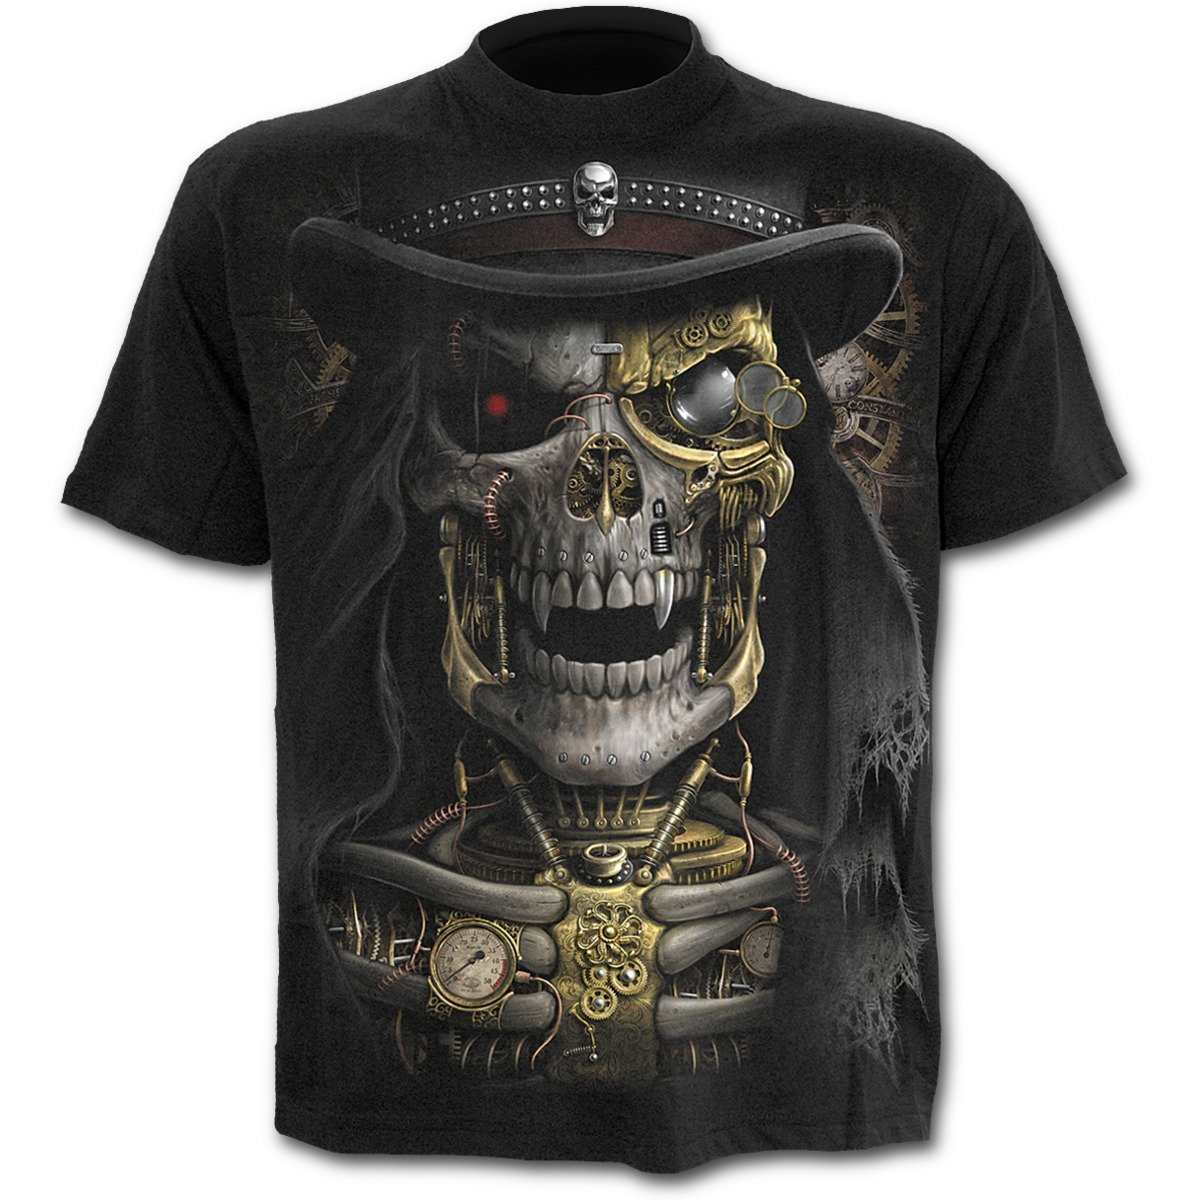 Spiral - STEAM PUNK REAPER - T-Shirt Black Spiral Direct Ltd M011M101